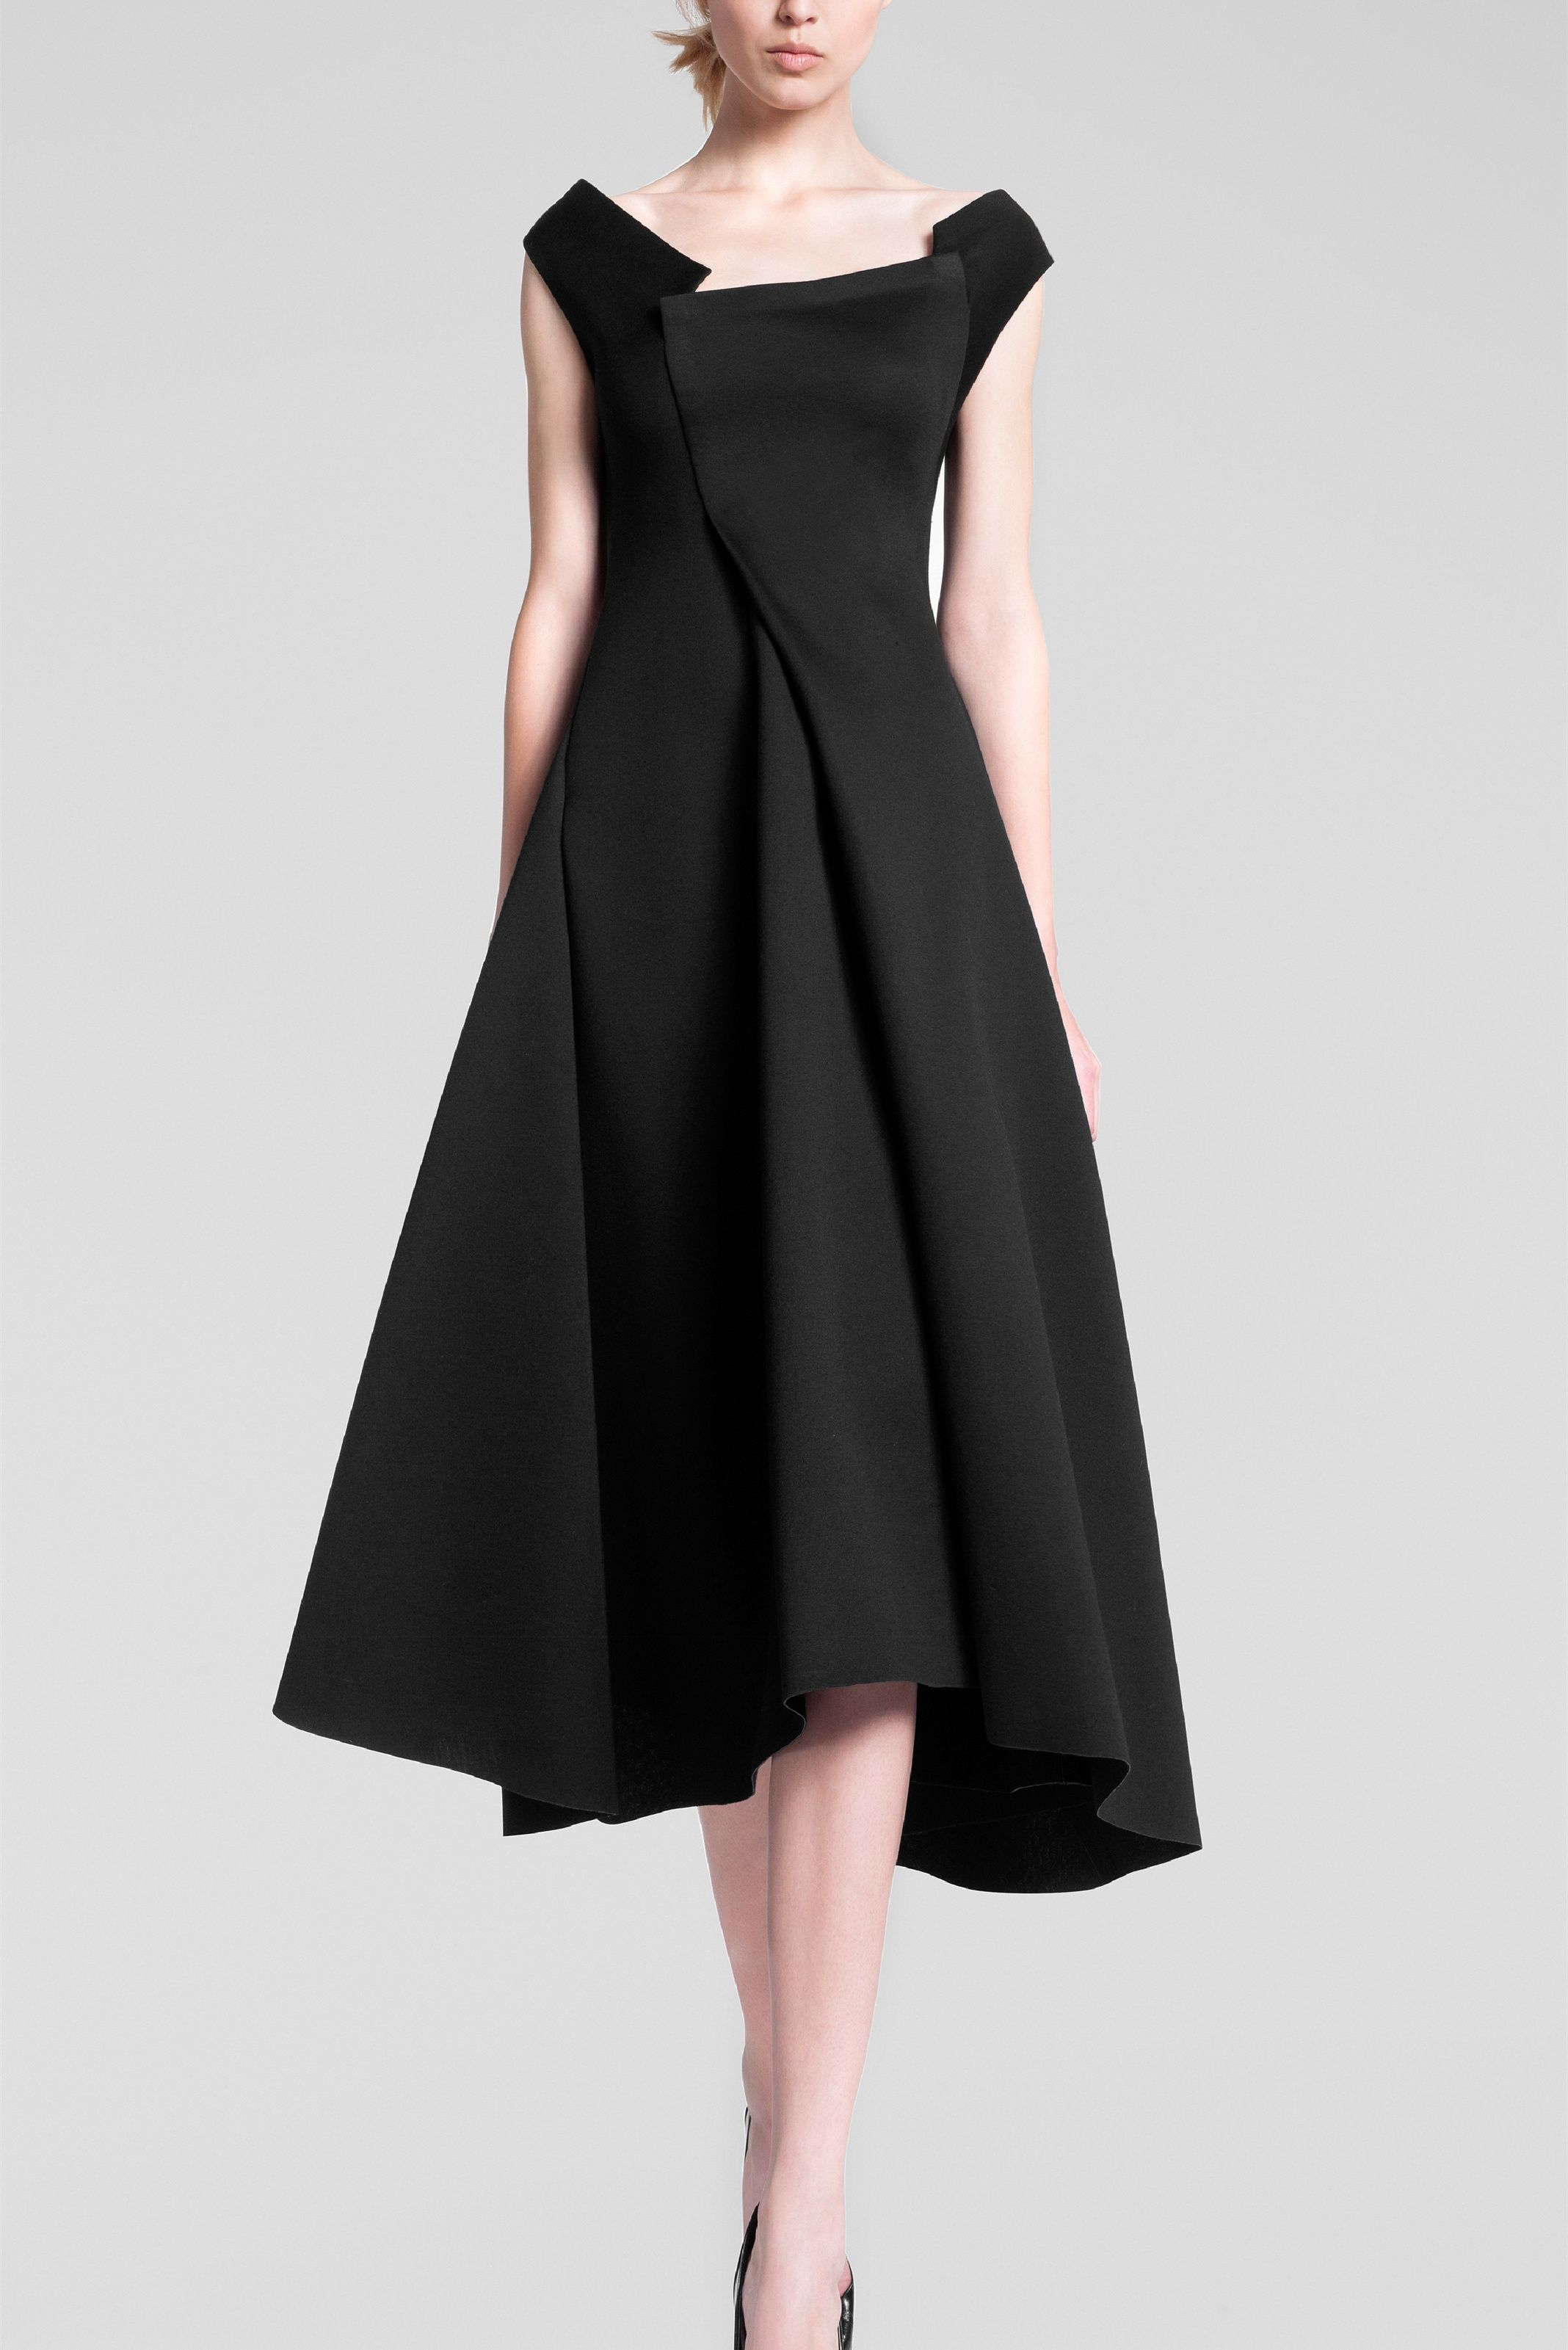 Donna Karan - Pre-Fall 2013 2014 | I wish this was in my closet to ...